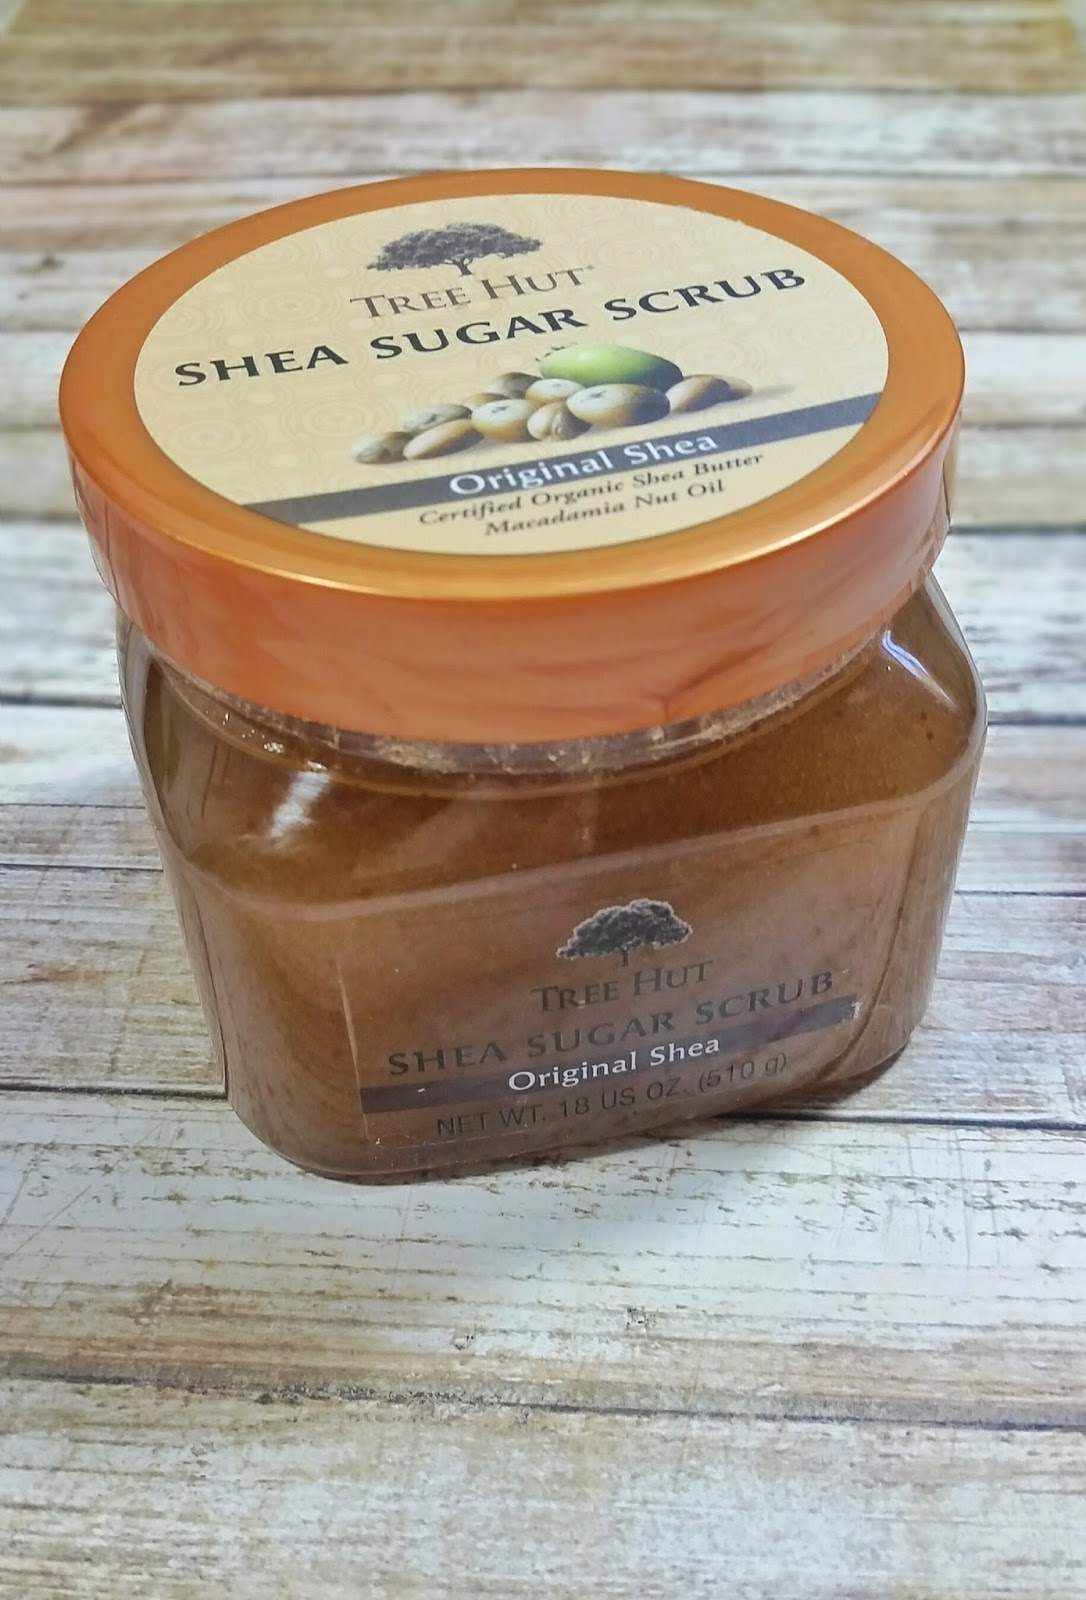 Tree Hut Shea Sugar Scrub review